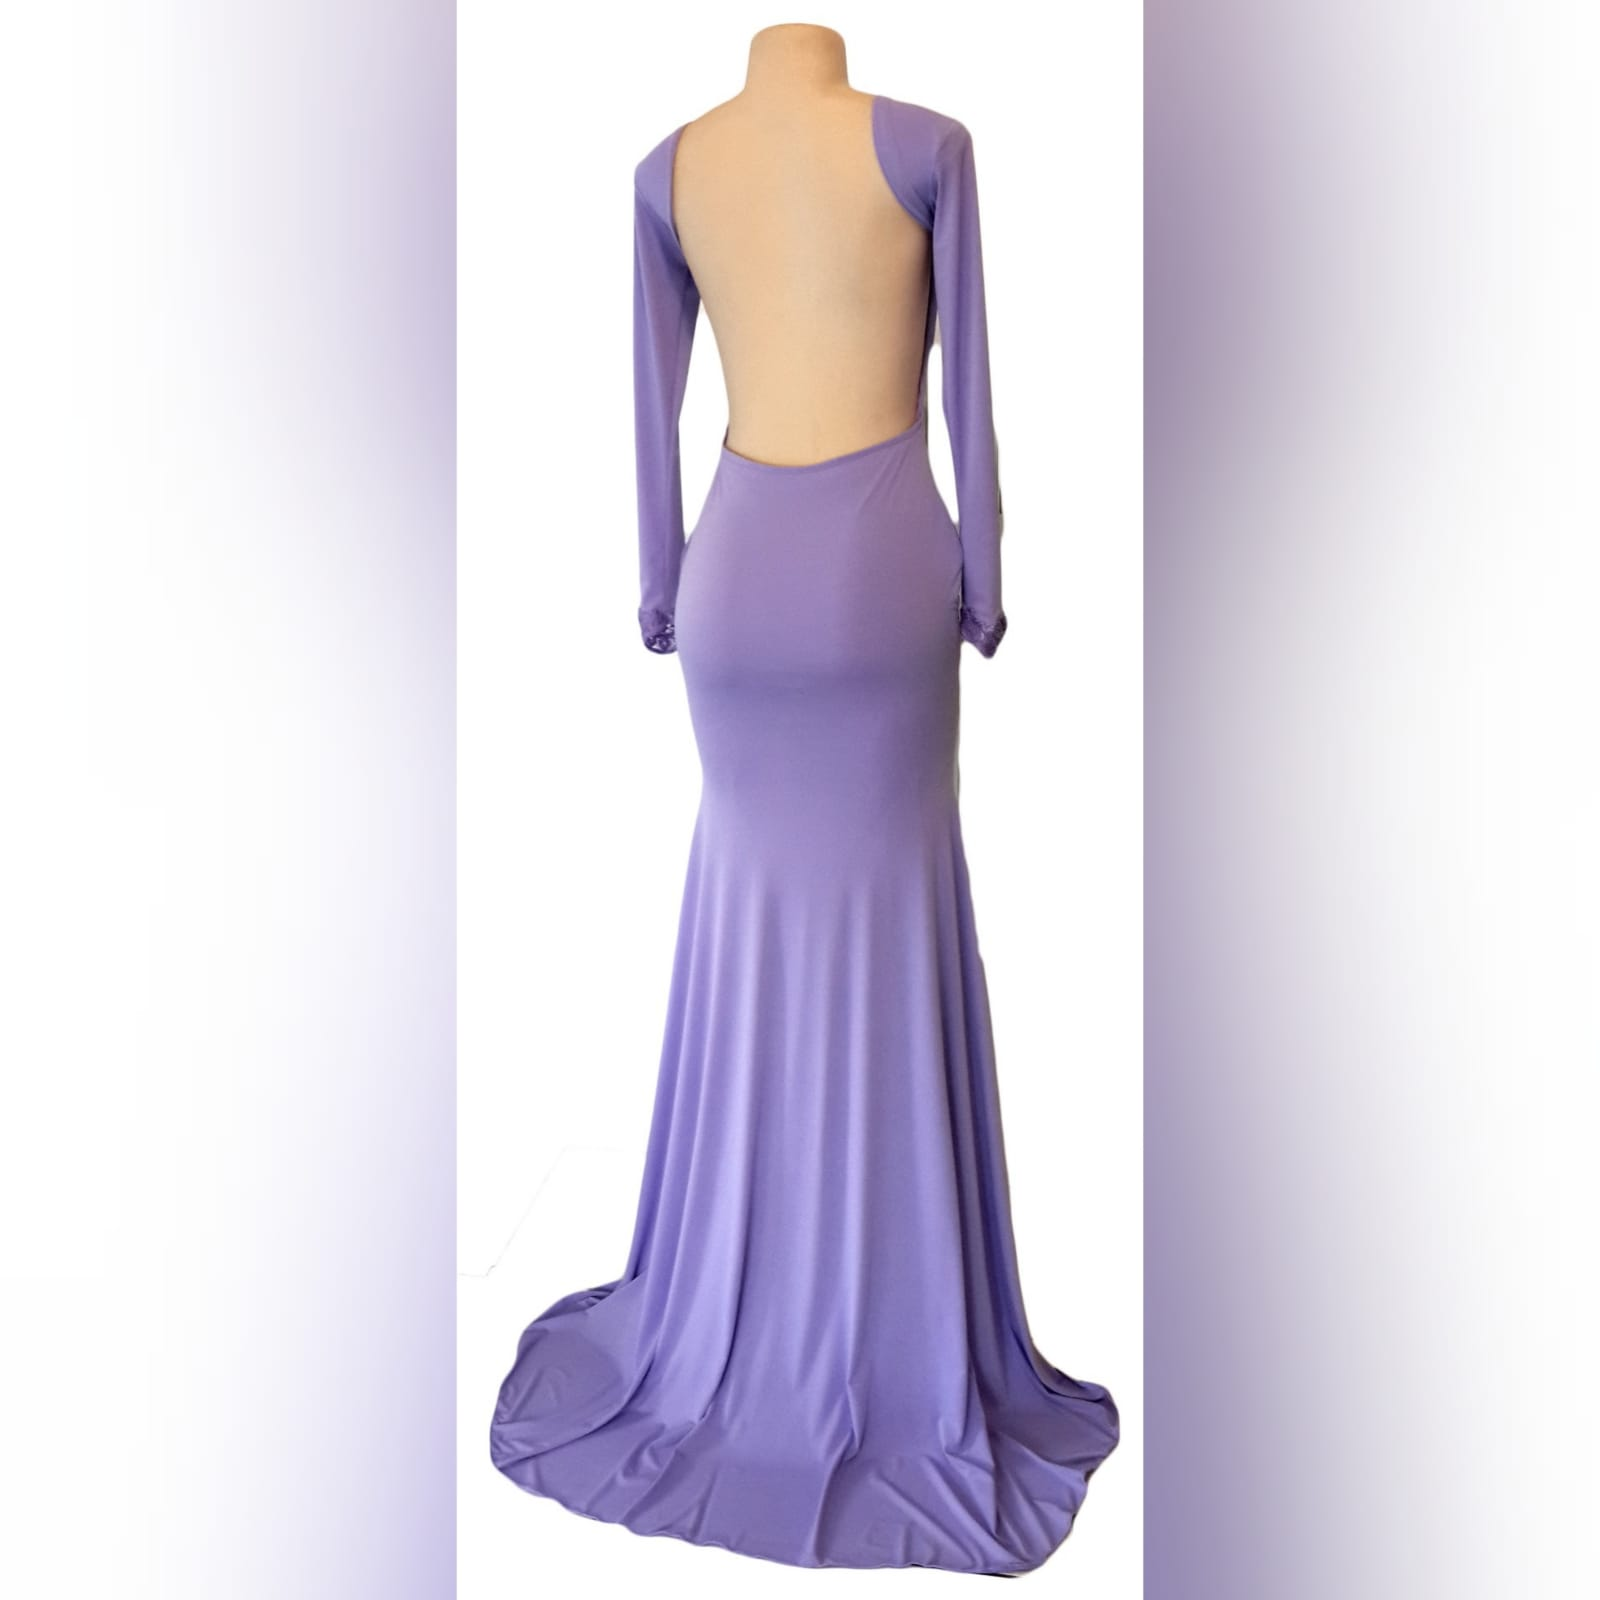 Body fitting lilac soft mermaid prom dress and a jewel neckline 6 body fitting lilac soft memaid prom dress and a jewel neckline. Low open square back. With a train and long sleeves. Sleeves finished with lace.